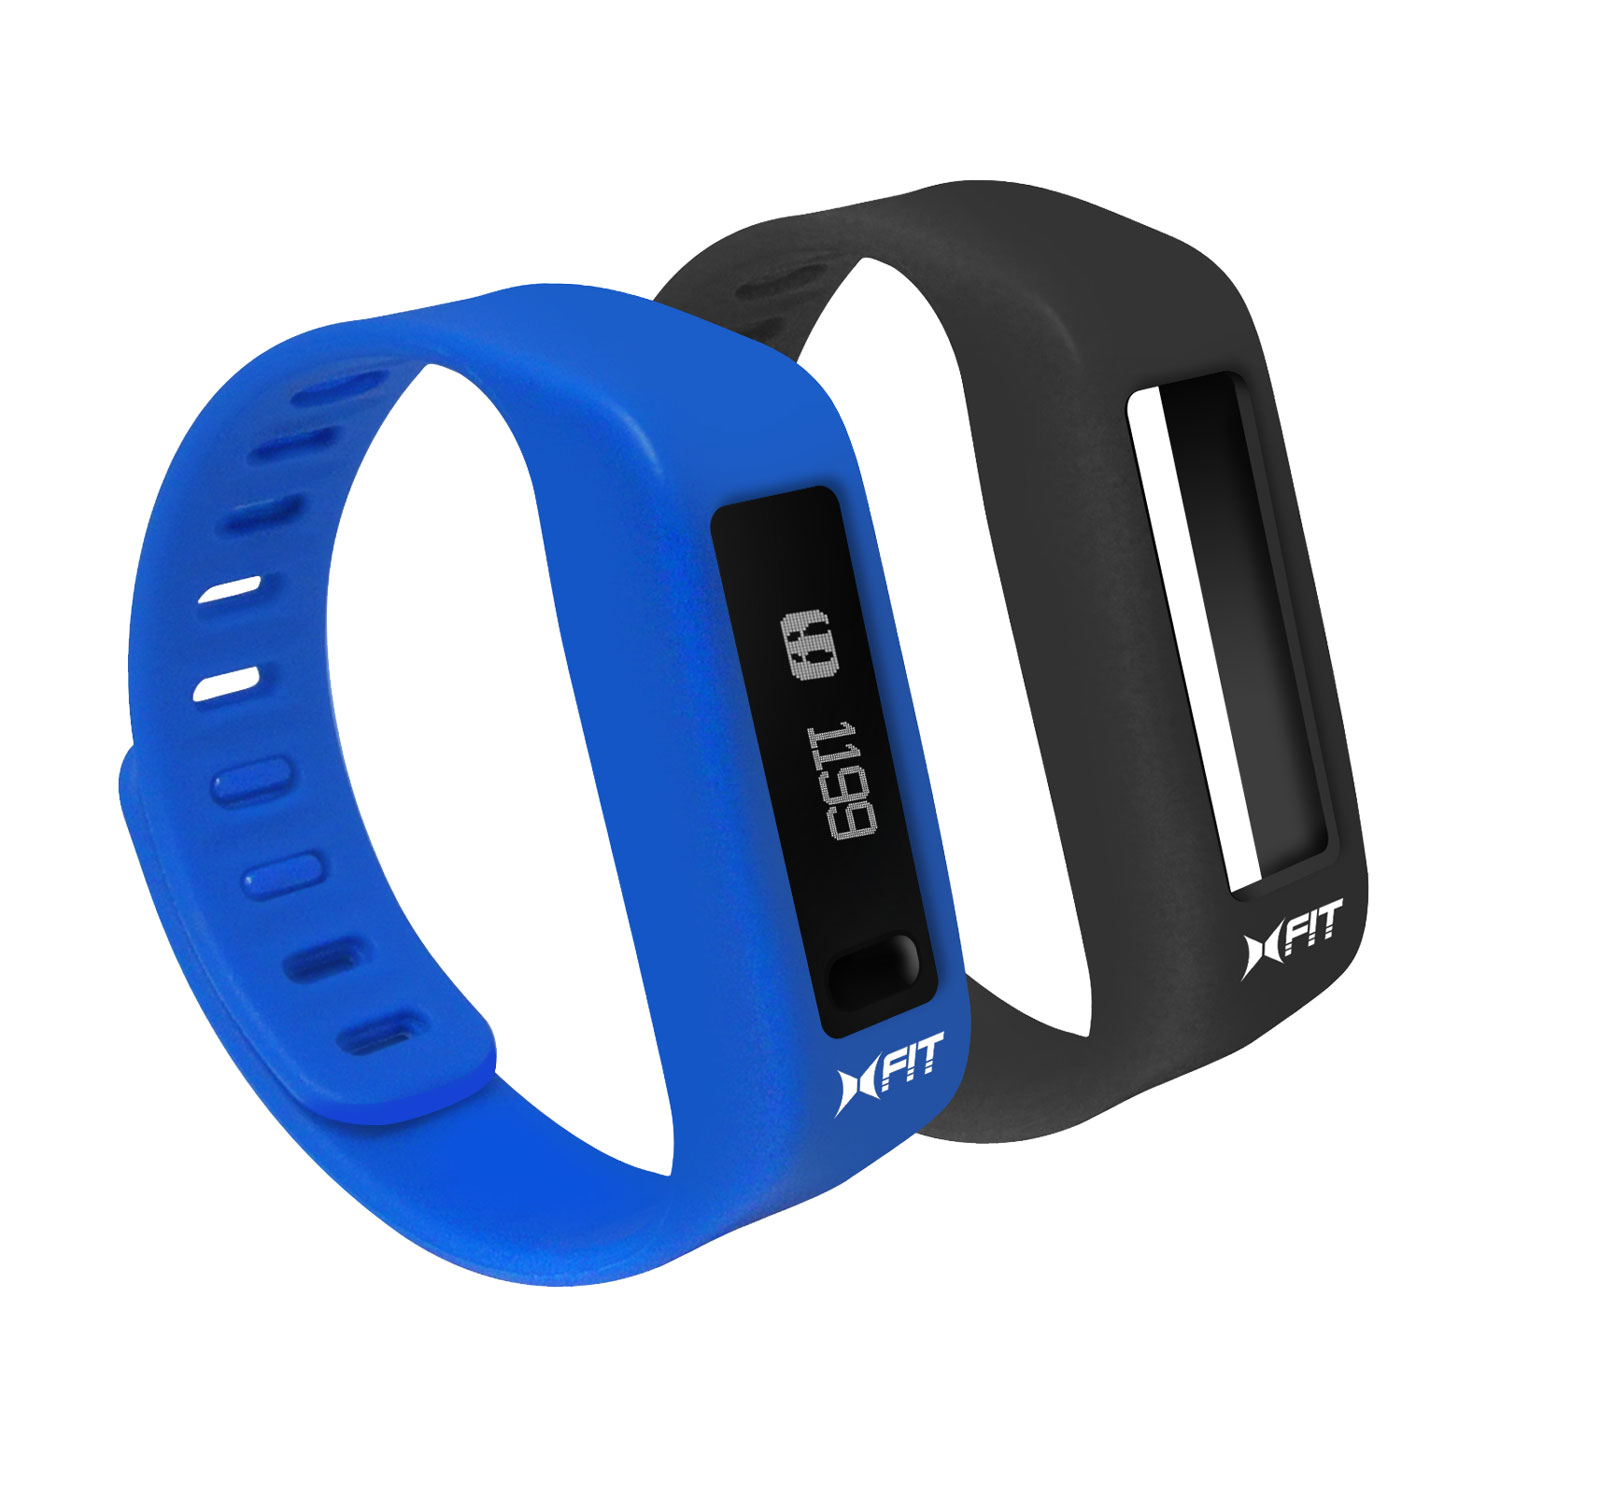 Xtreme Xfit Watch Blue/Black Activity and Sleep Monitor with Two Bands at Sears.com